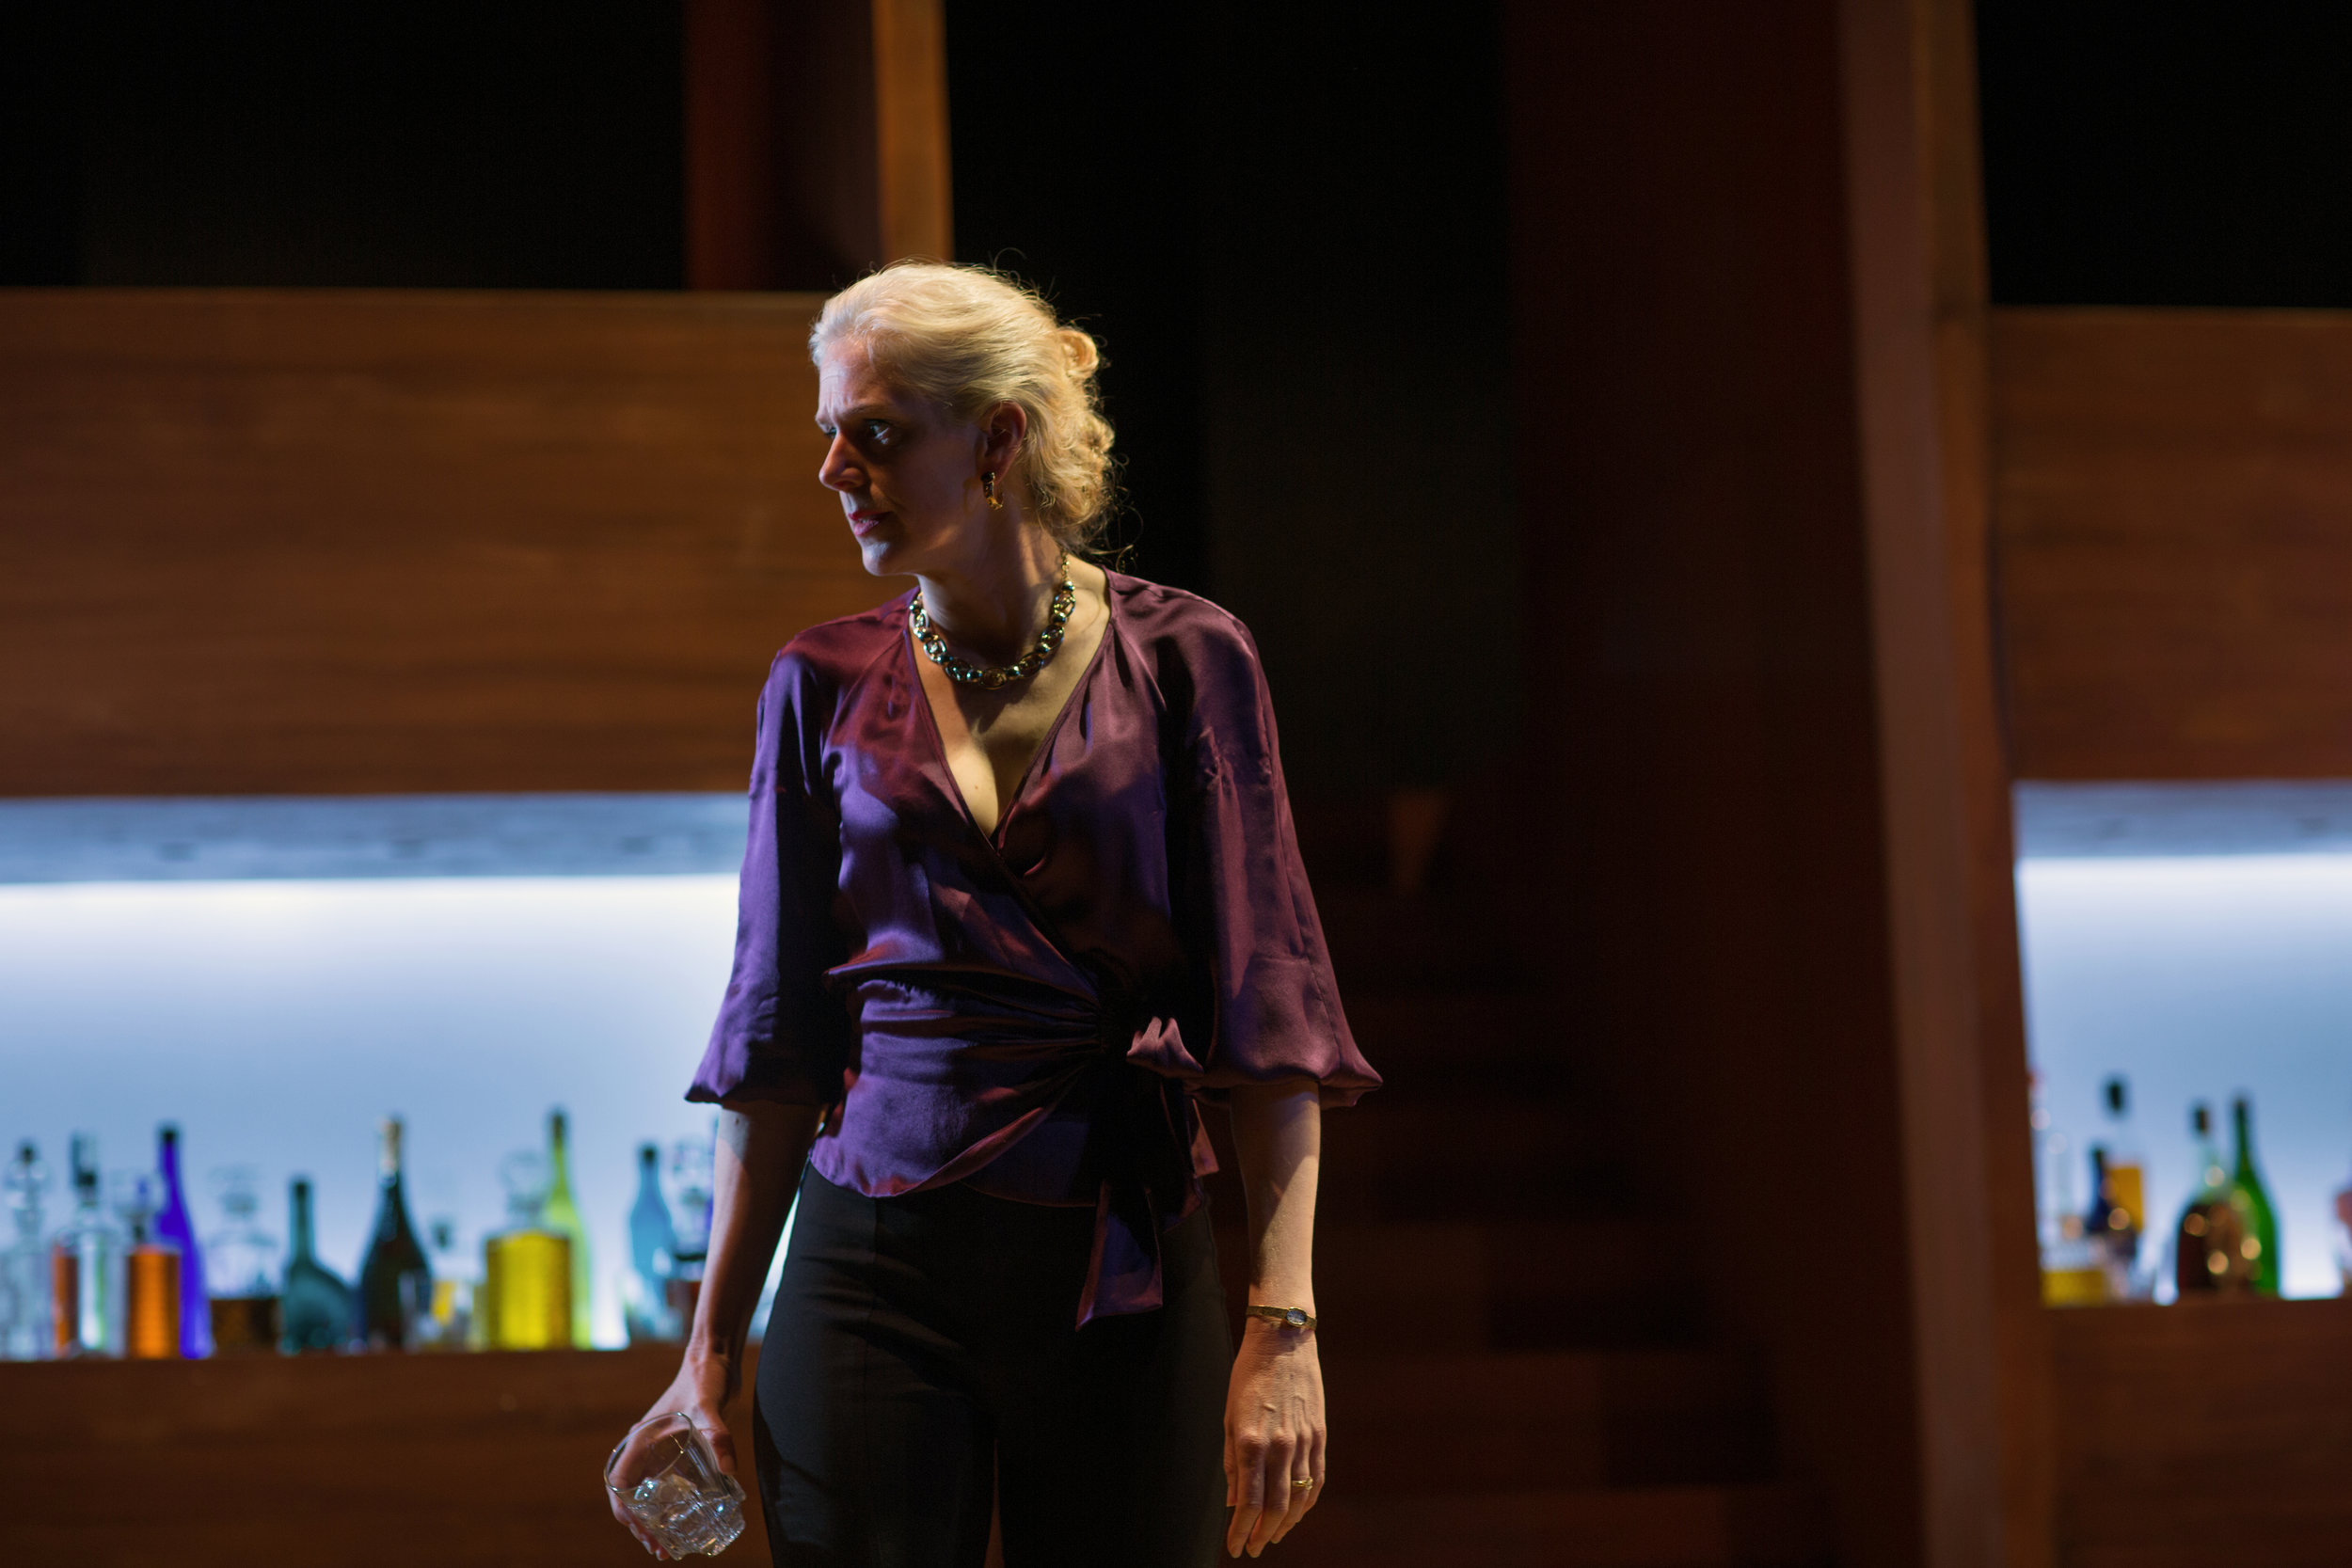 """""""Wilmurt glides across the stage, tapping parts of the set as if Martha is feeling the outlines of her soul. The scene is often played as a drunk lashing out at the world, at odds with everything and everyone around her. But Wilmurt's touch is gentle and precise. Through her superb performance, we realize how fragile Martha is, and how delicate the life and world she's made truly are. Drunk has never been so exacting and painful.""""      KQED.ORG review"""